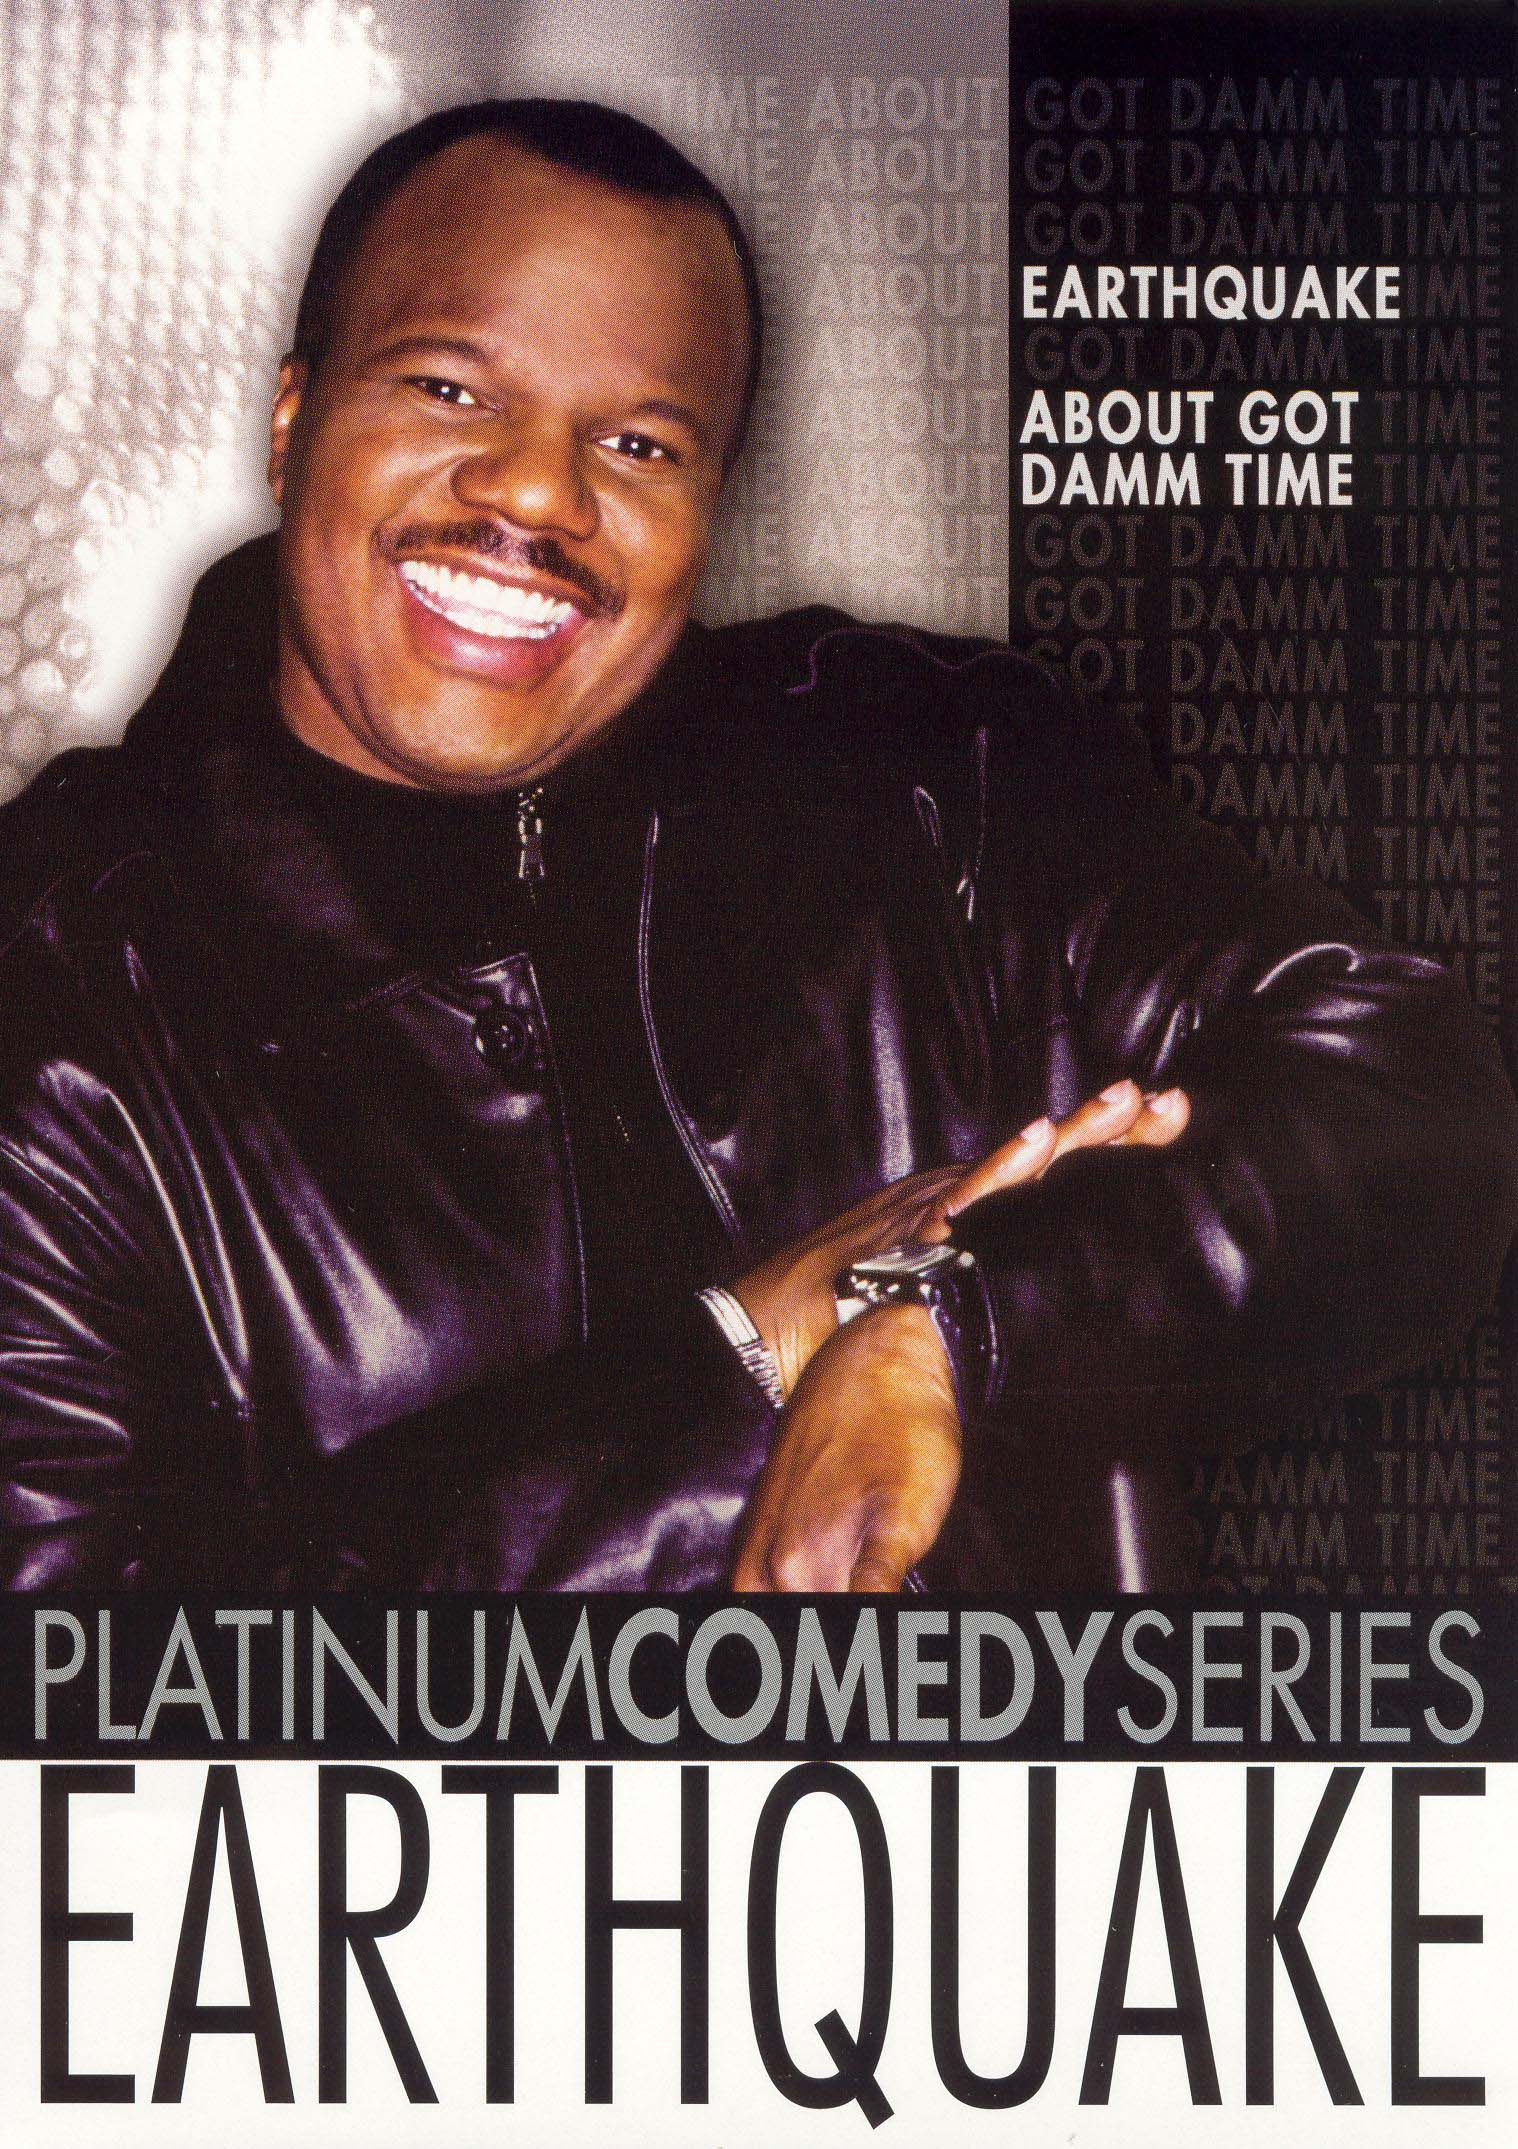 Platinum Comedy Series: Earthquake - About Got Damm Time